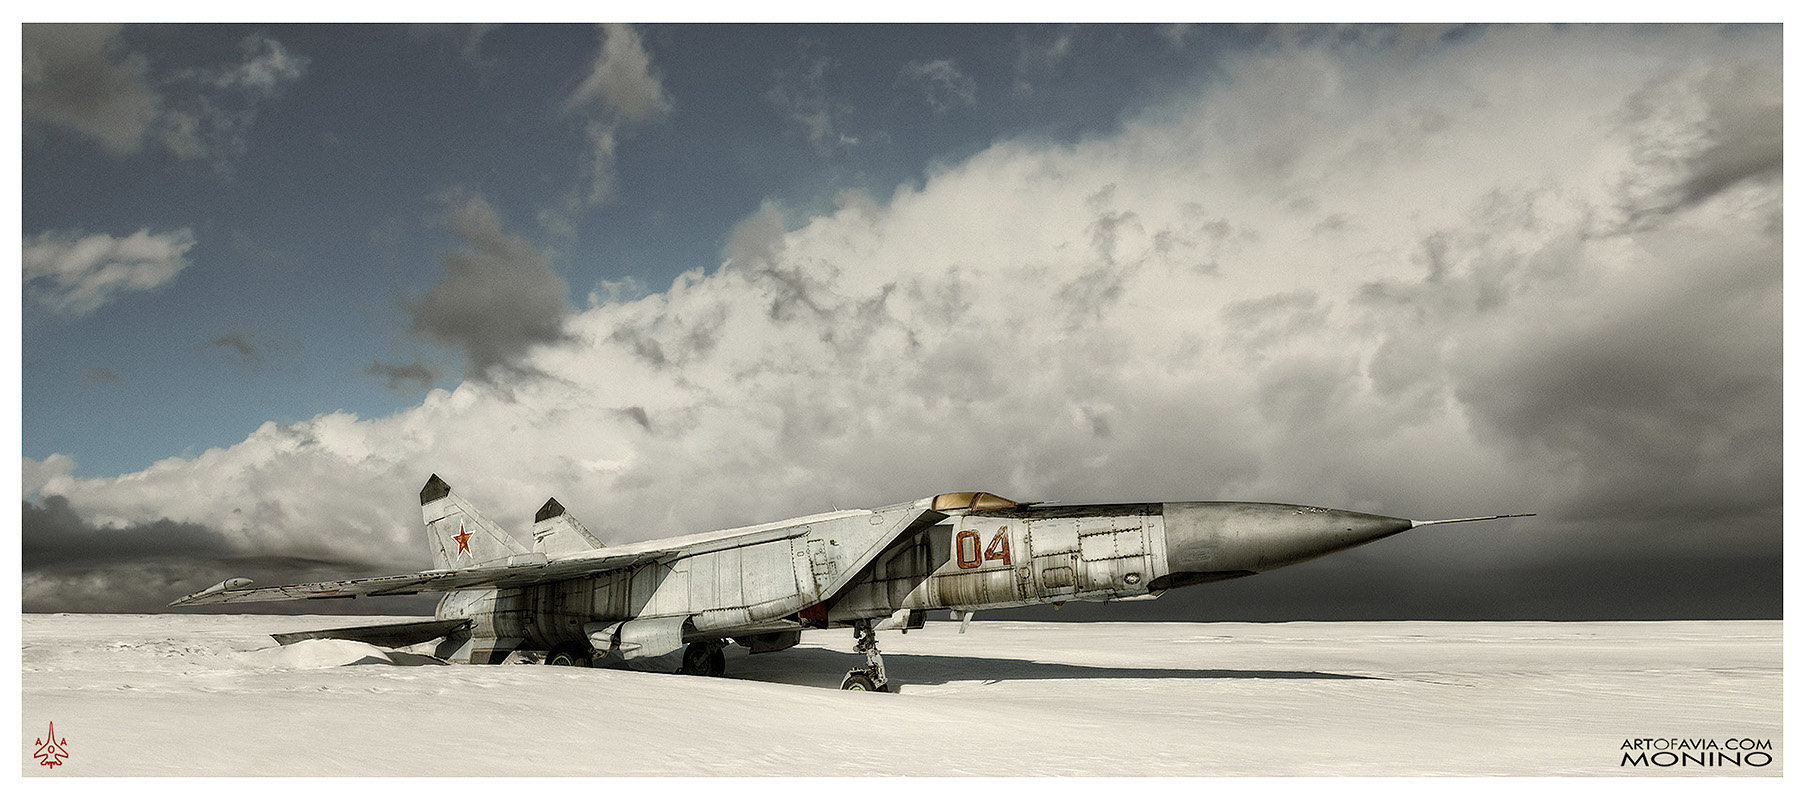 Mikoyan-Gurevich-MiG-25PD-Art-of-Avia-Central-Air-Force-Museum-Monino-by-Kent-Miklenda-800pxh-21-9-IL-CT-A-BW.jpg